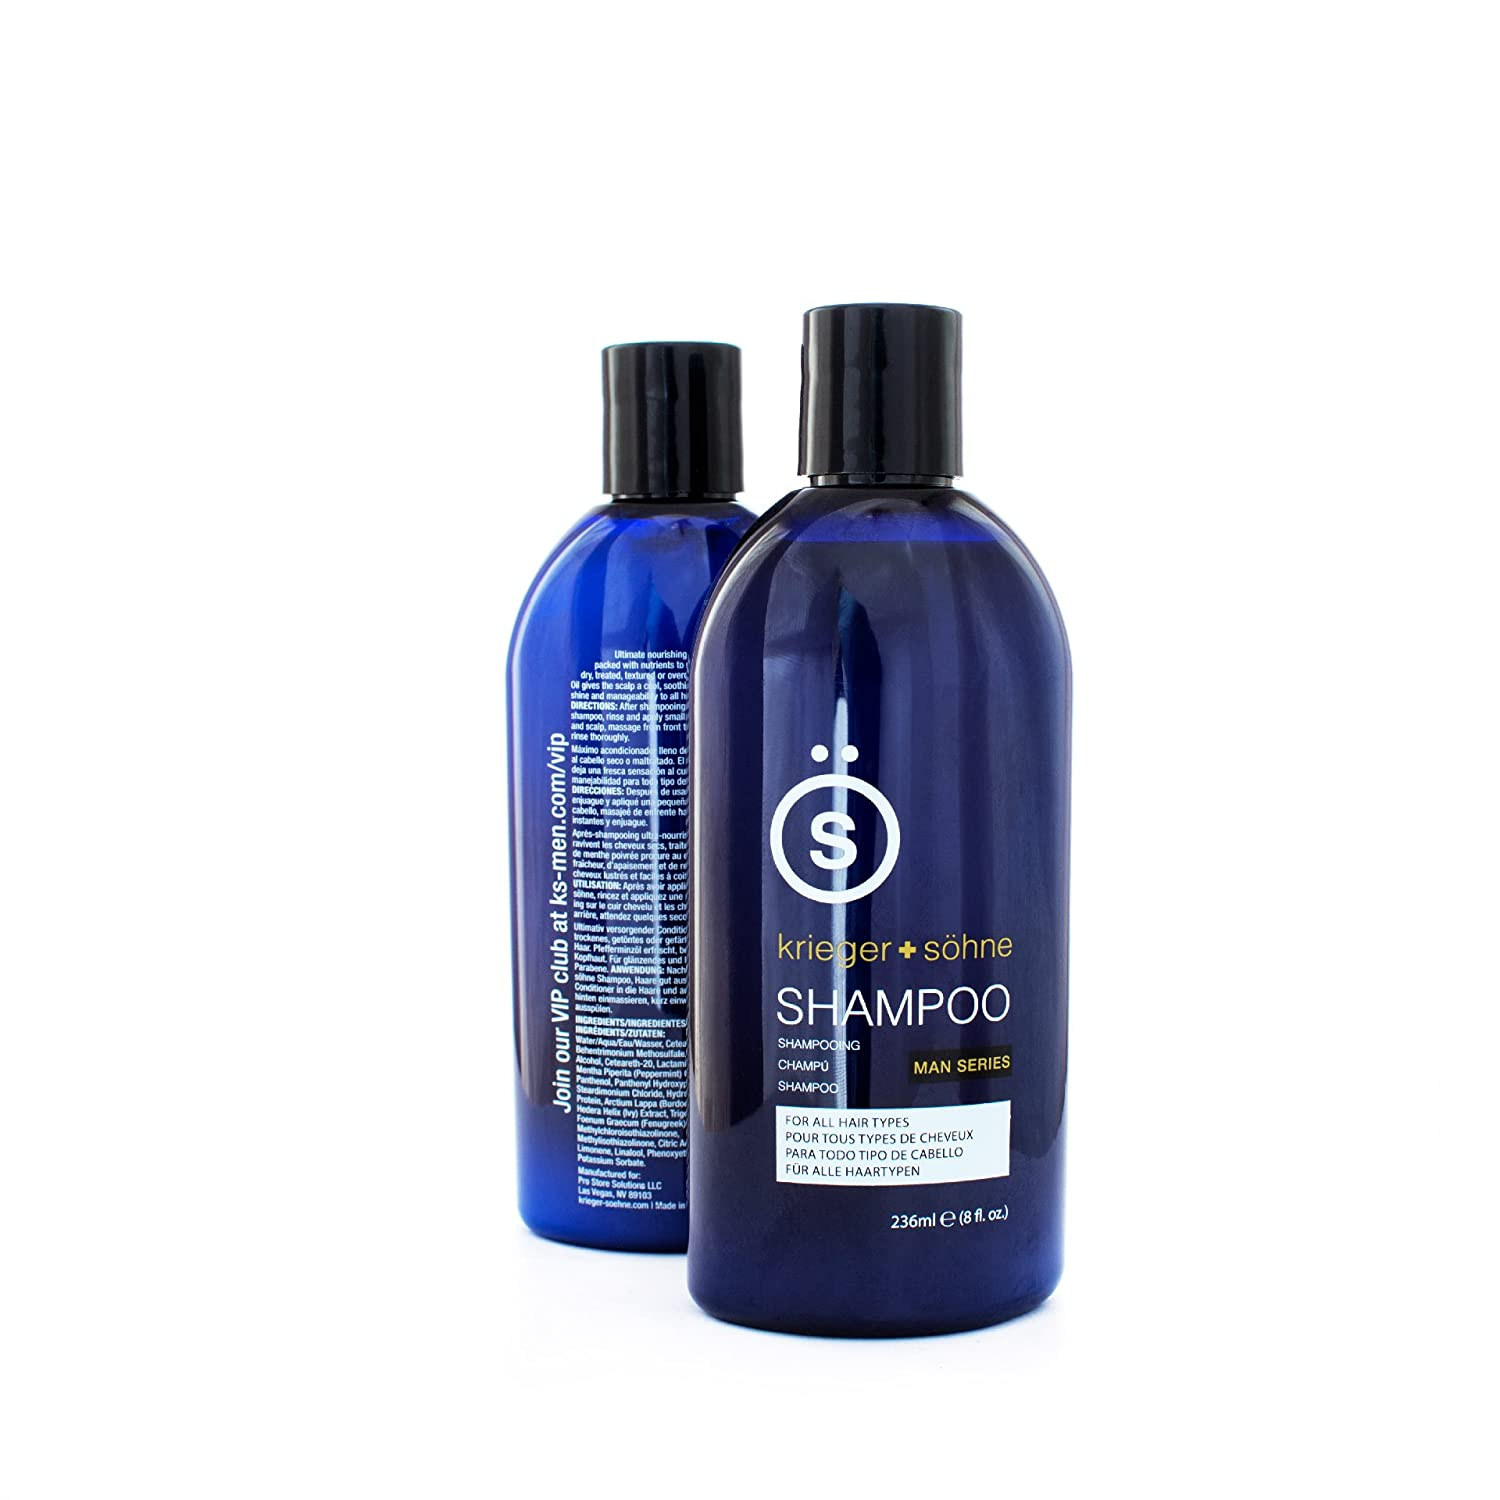 Shampoo for Mens Hair - Contains Invigorating Tea Tree Oil - Krieger + Söhne Man Series - For All Hair Types - Exploit Your Style - Single 8oz Bottle